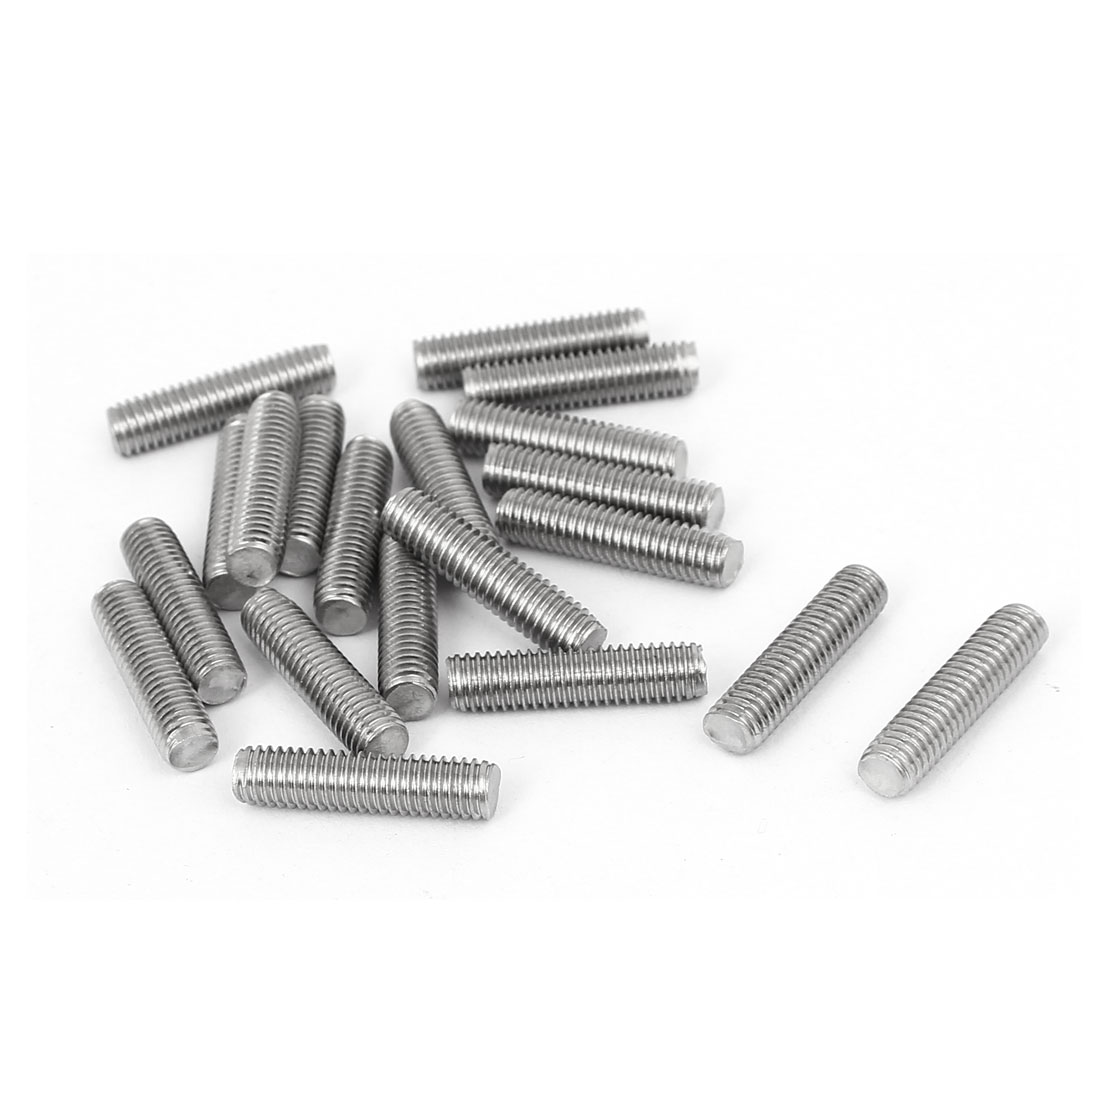 M5 x 20mm 304 Stainless Steel Fully Threaded Rod Bar Studs Fastener 20 Pcs